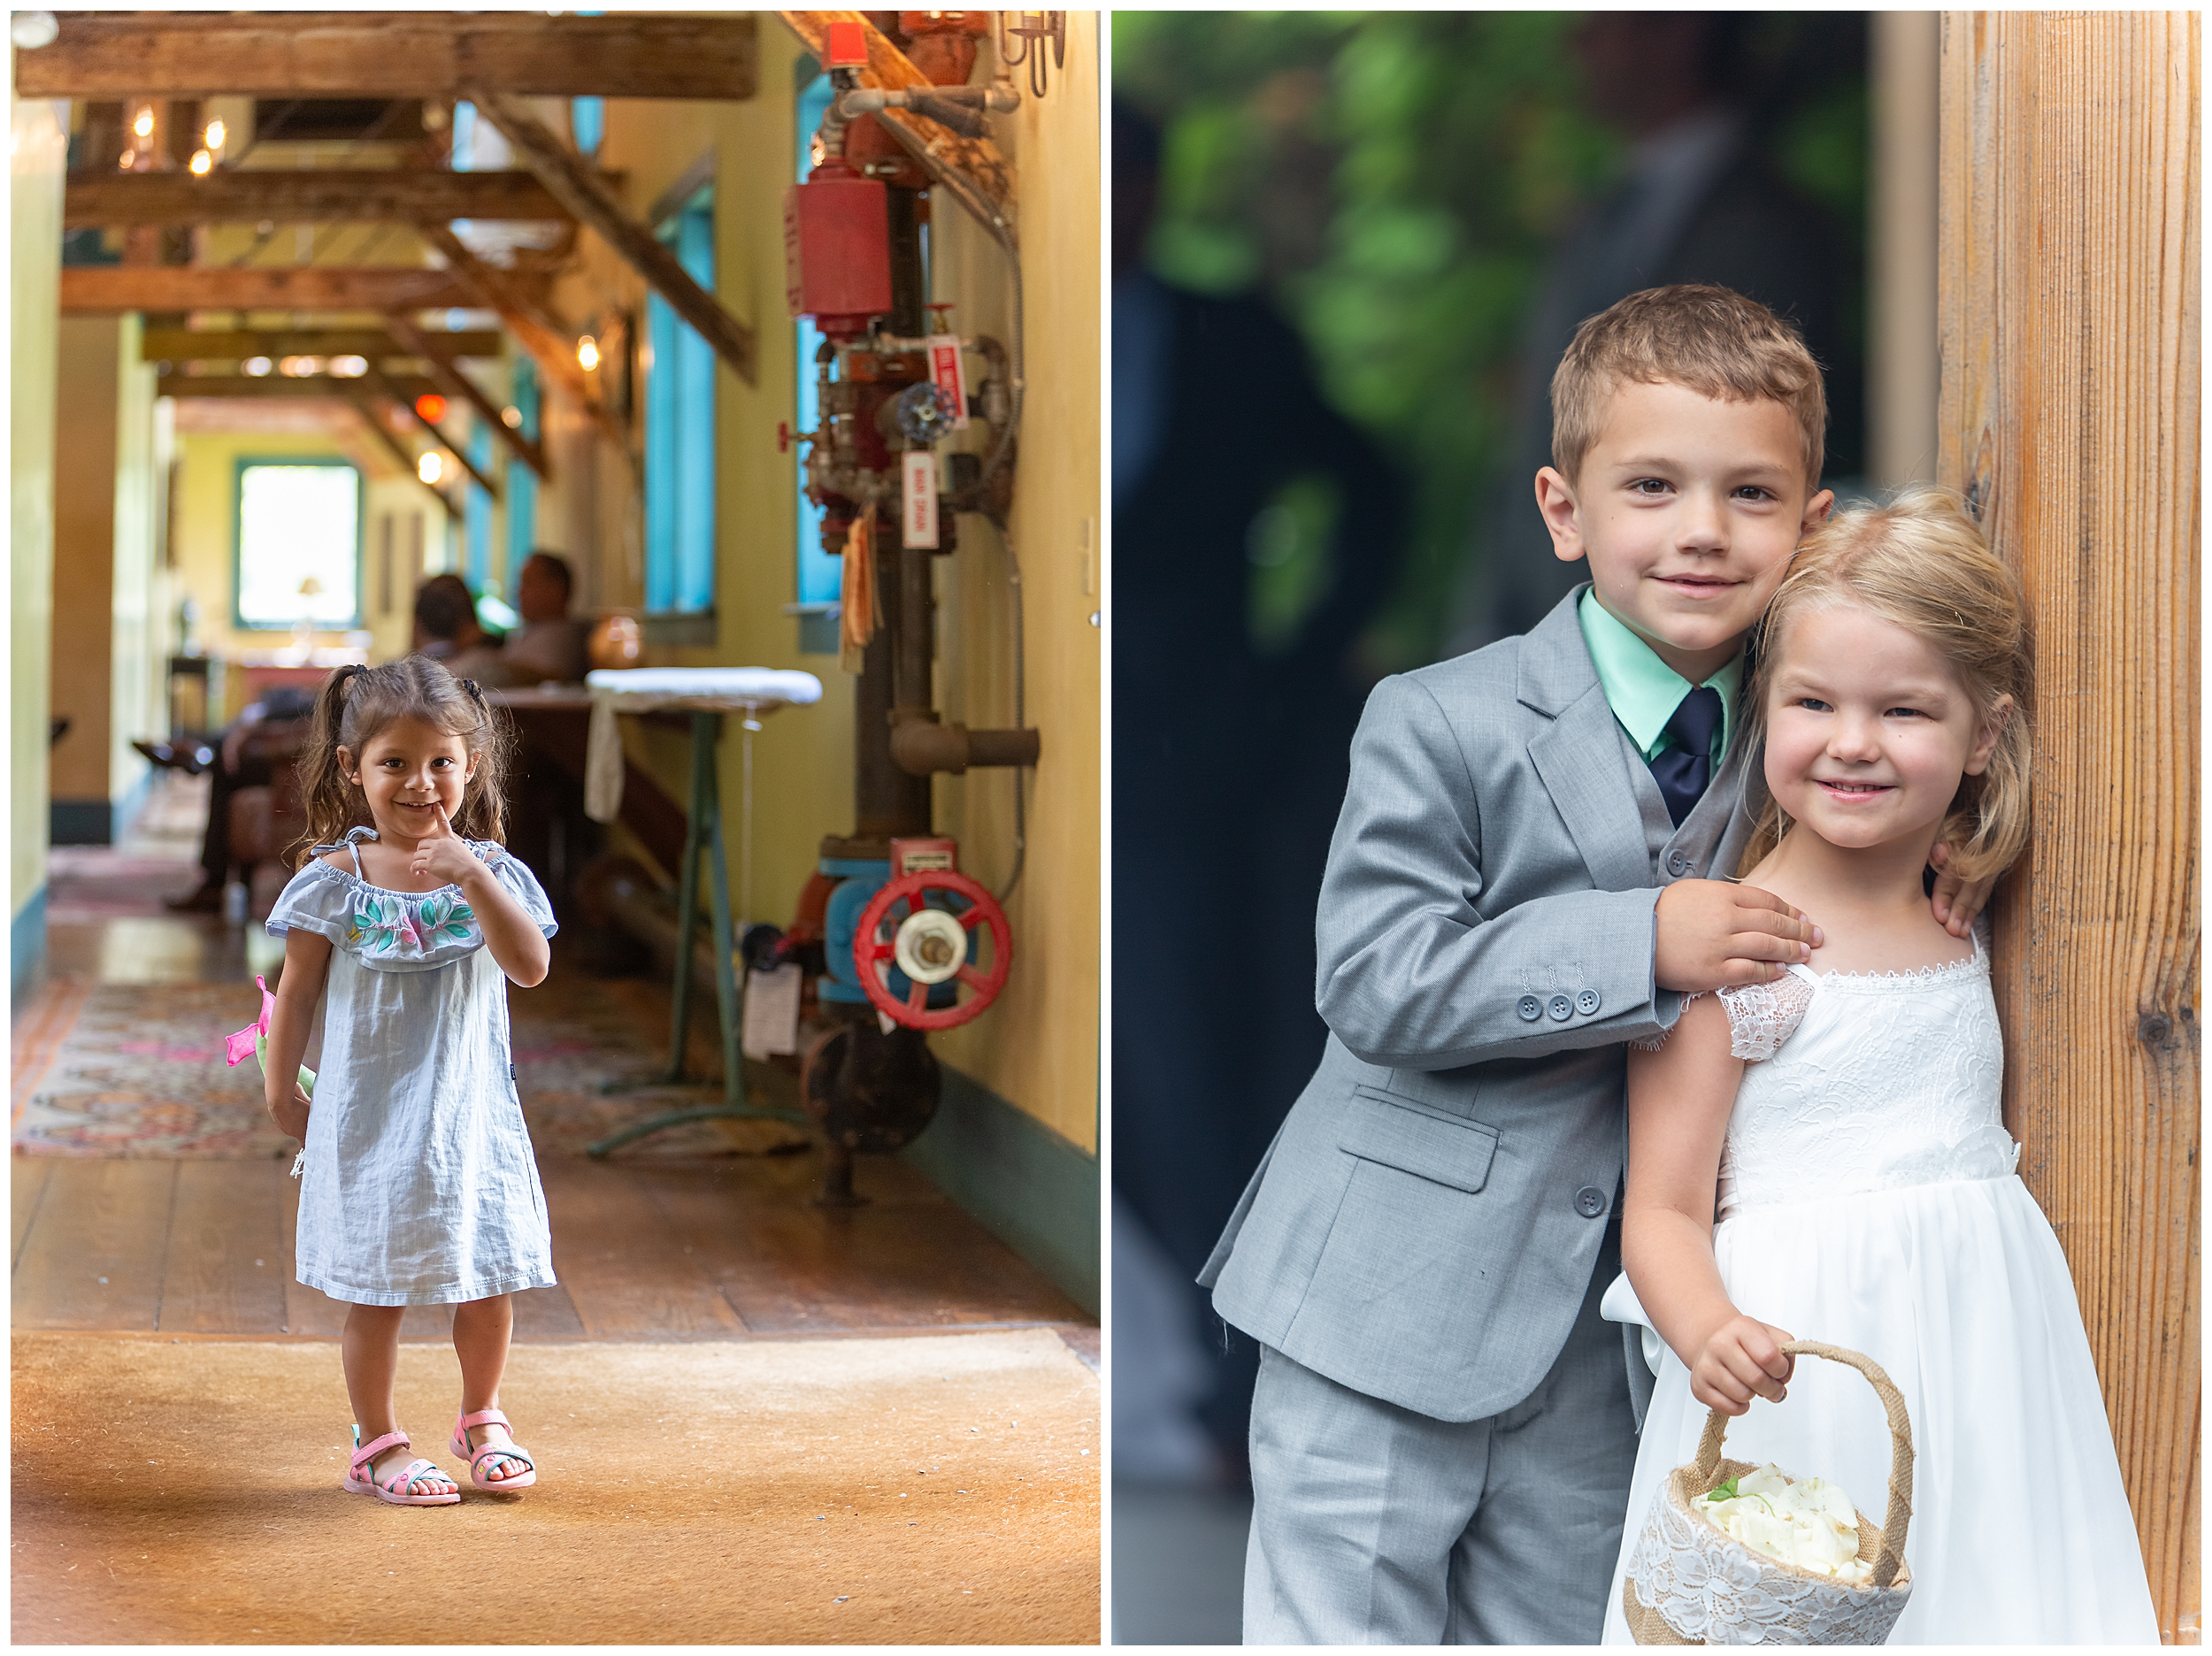 Certainly no shortage of sweet children at this wedding.